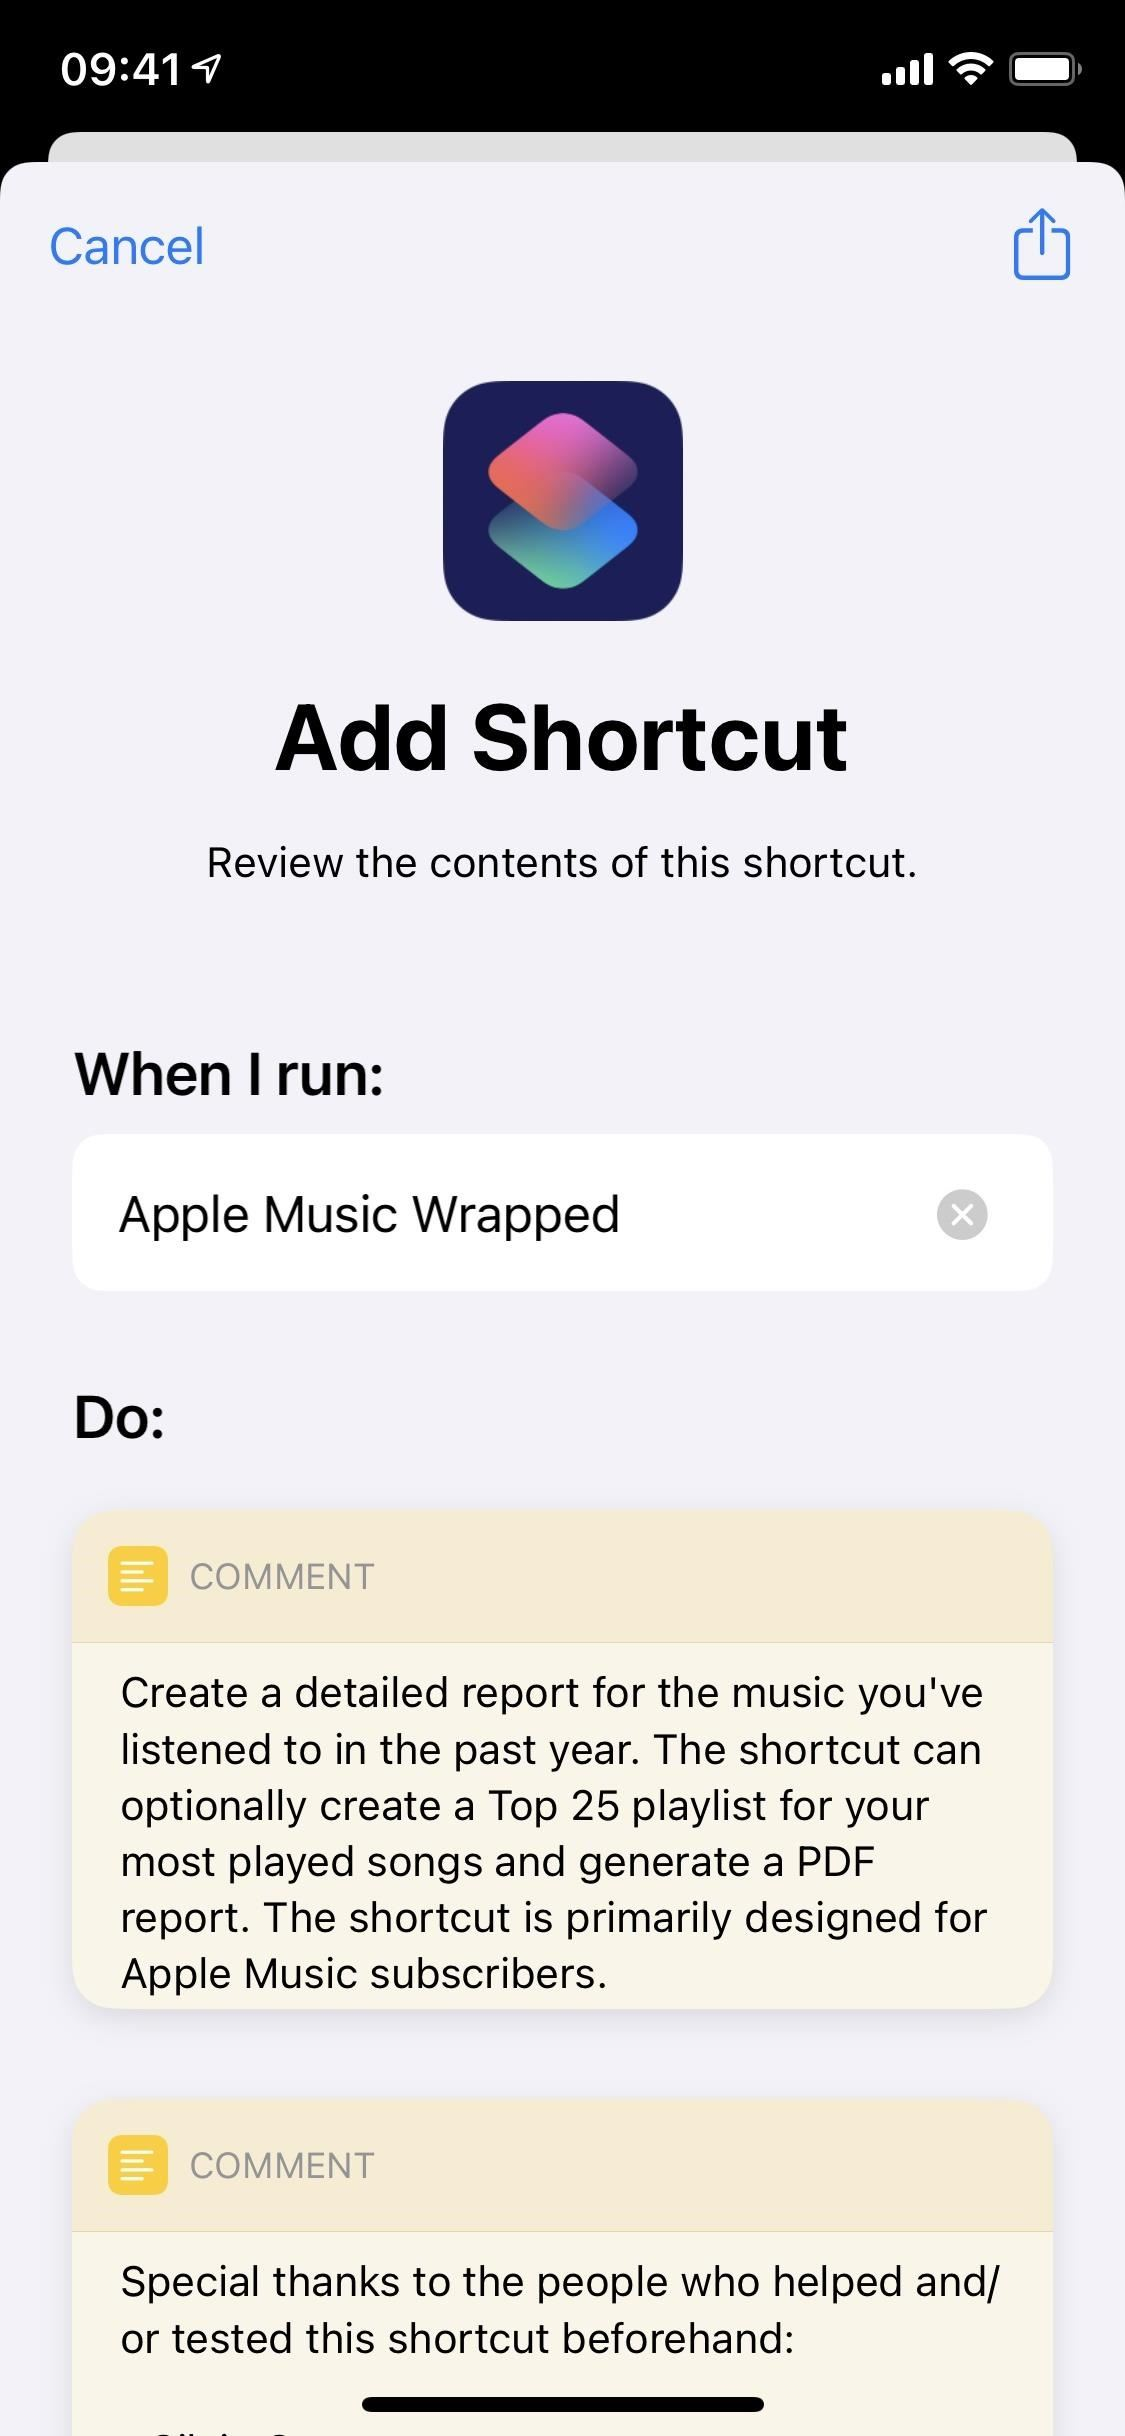 Use Apple Music Wrapped to watch your most played songs in 2020 from Apple Music or your iPhone's library